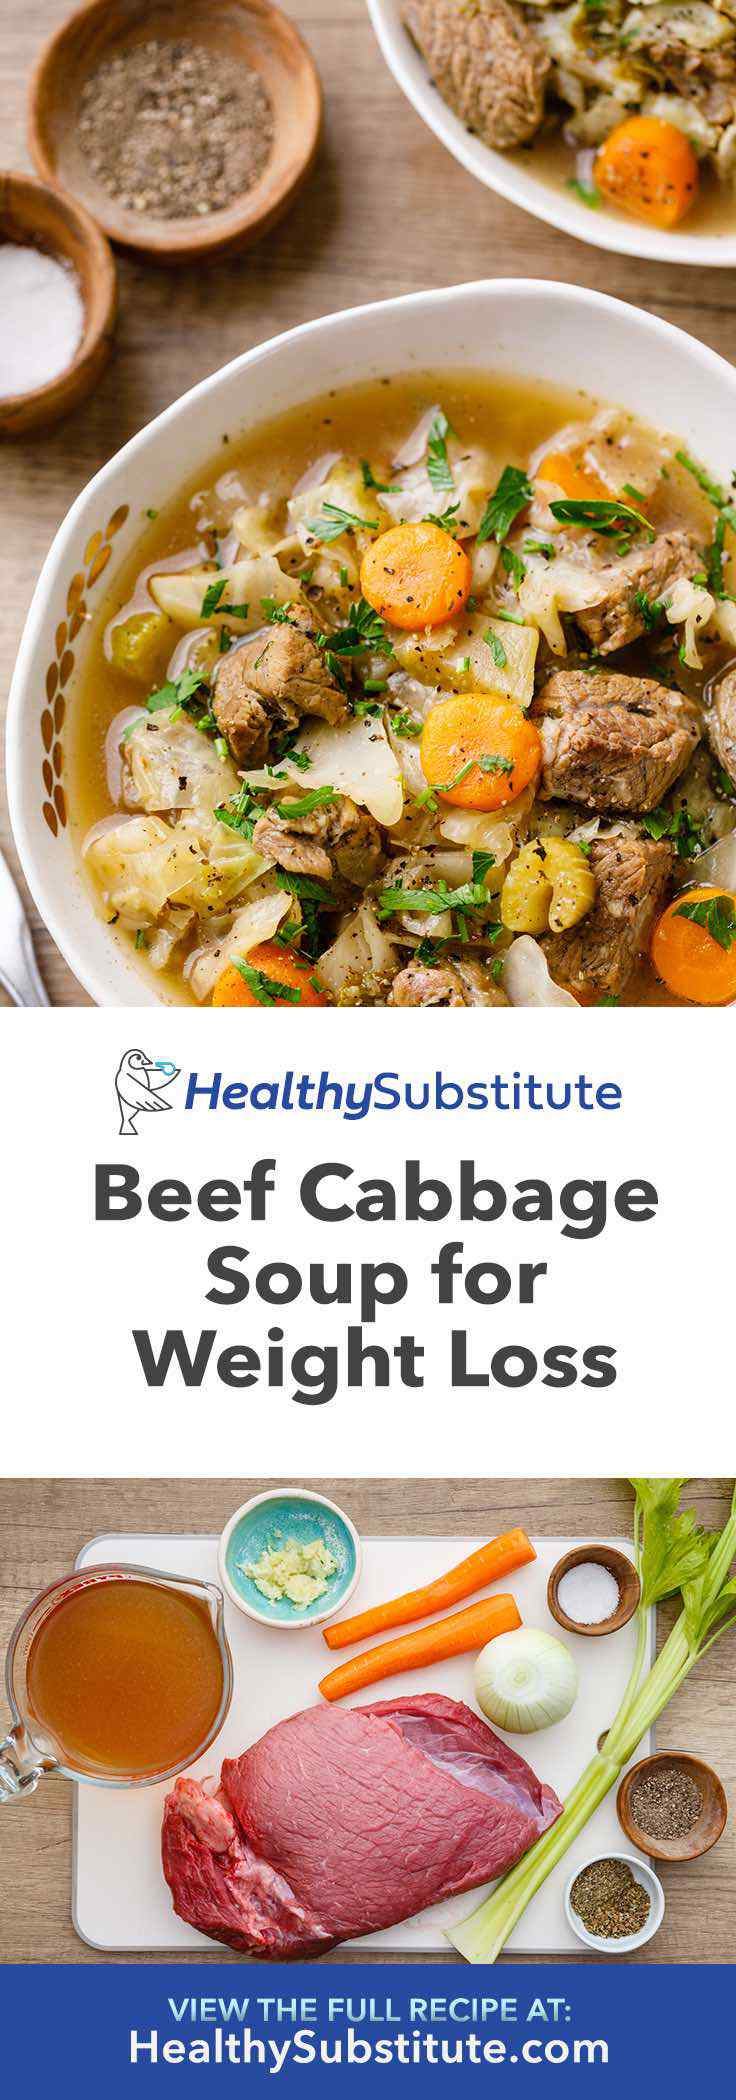 This beef cabbage weight loss soup is tasty, hearty and a great recipe to help you lose weight.